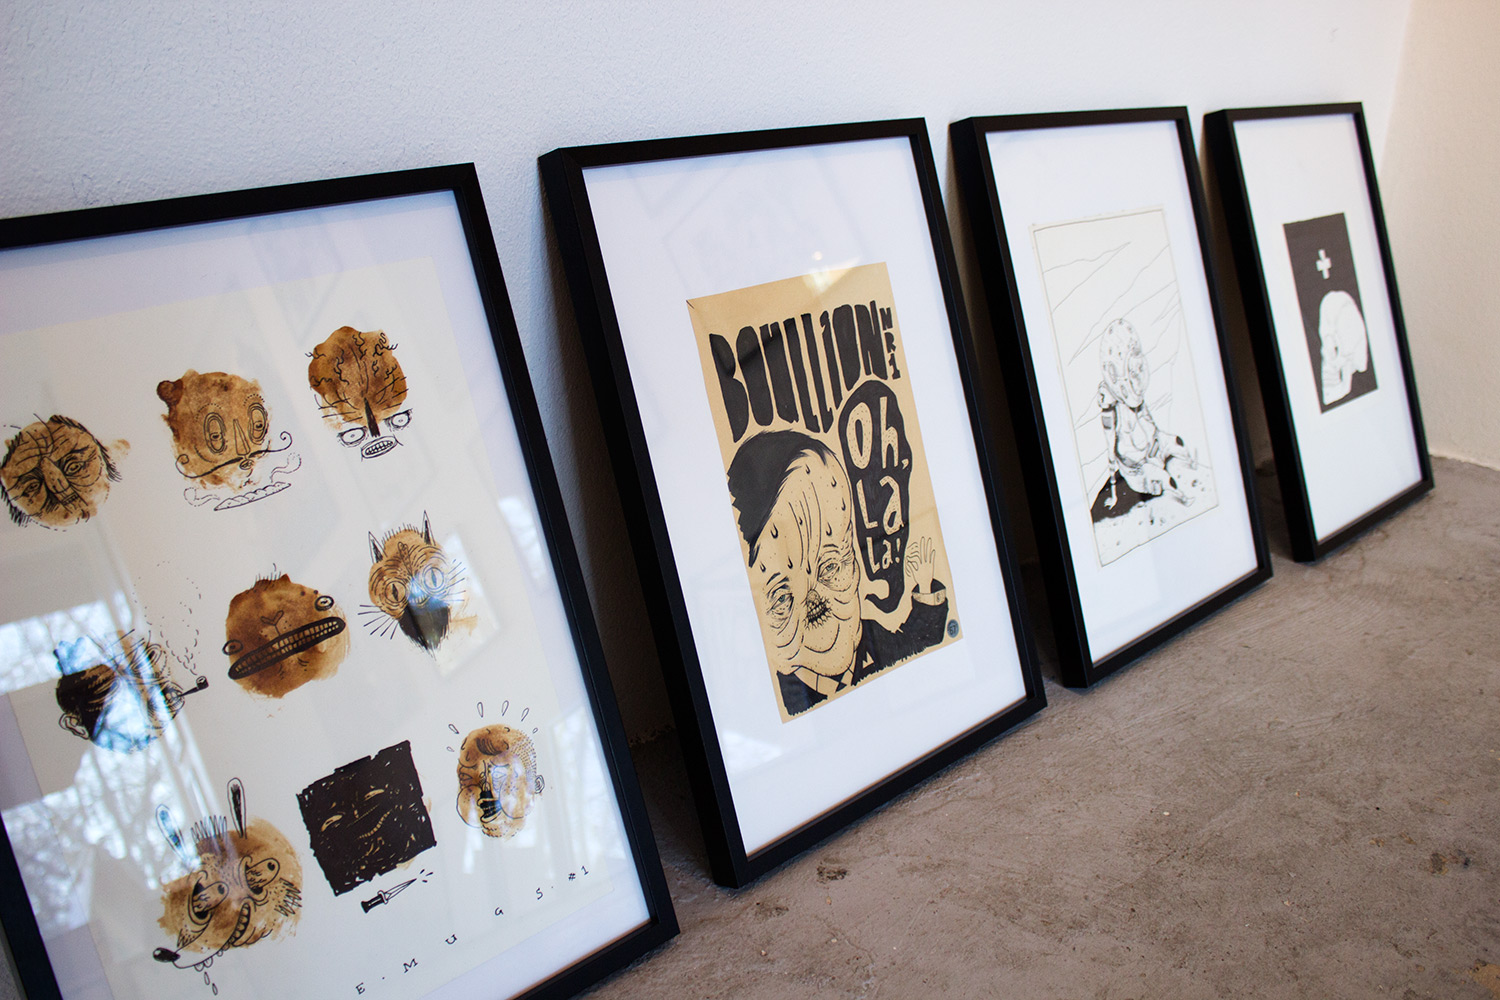 original punk drawings, vulgar drawing, fantastic illustration. illustration. expressive modern art. talented artists, online art gallery